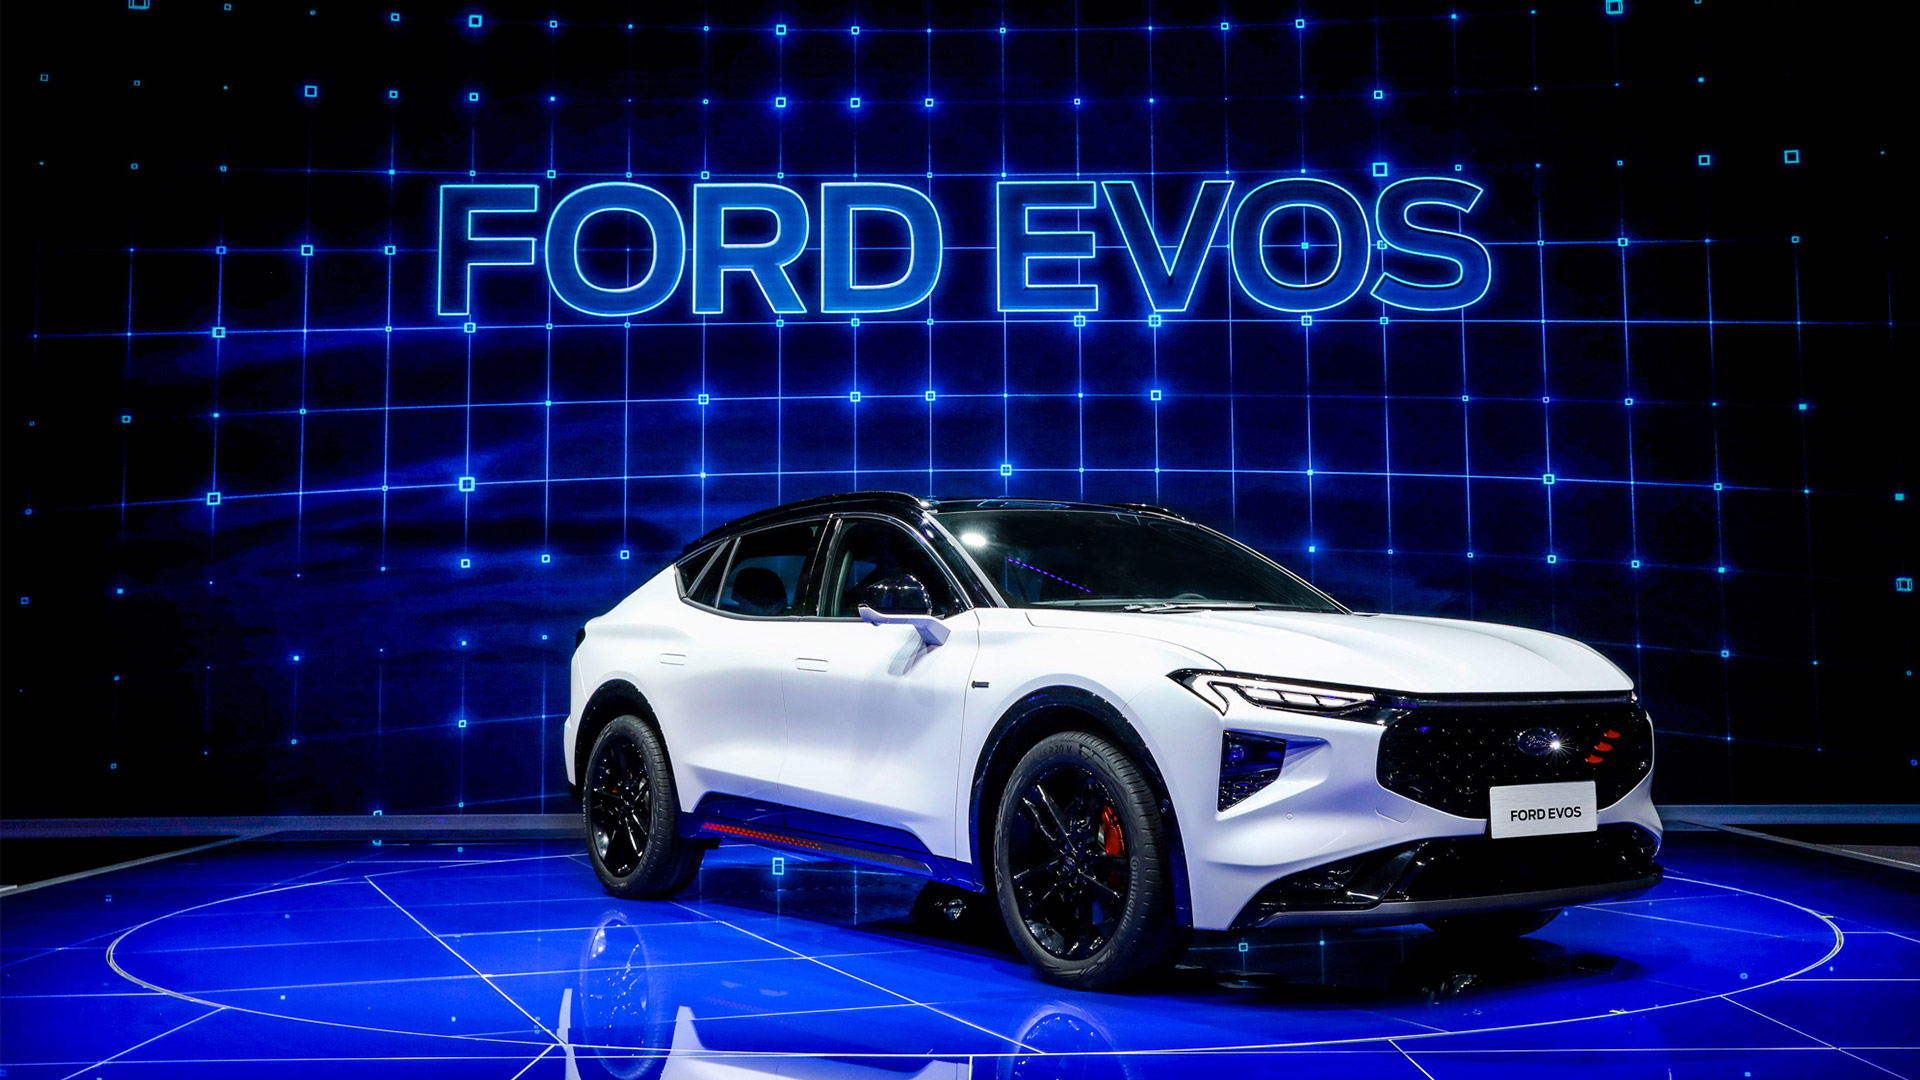 The Ford Evos Showroom